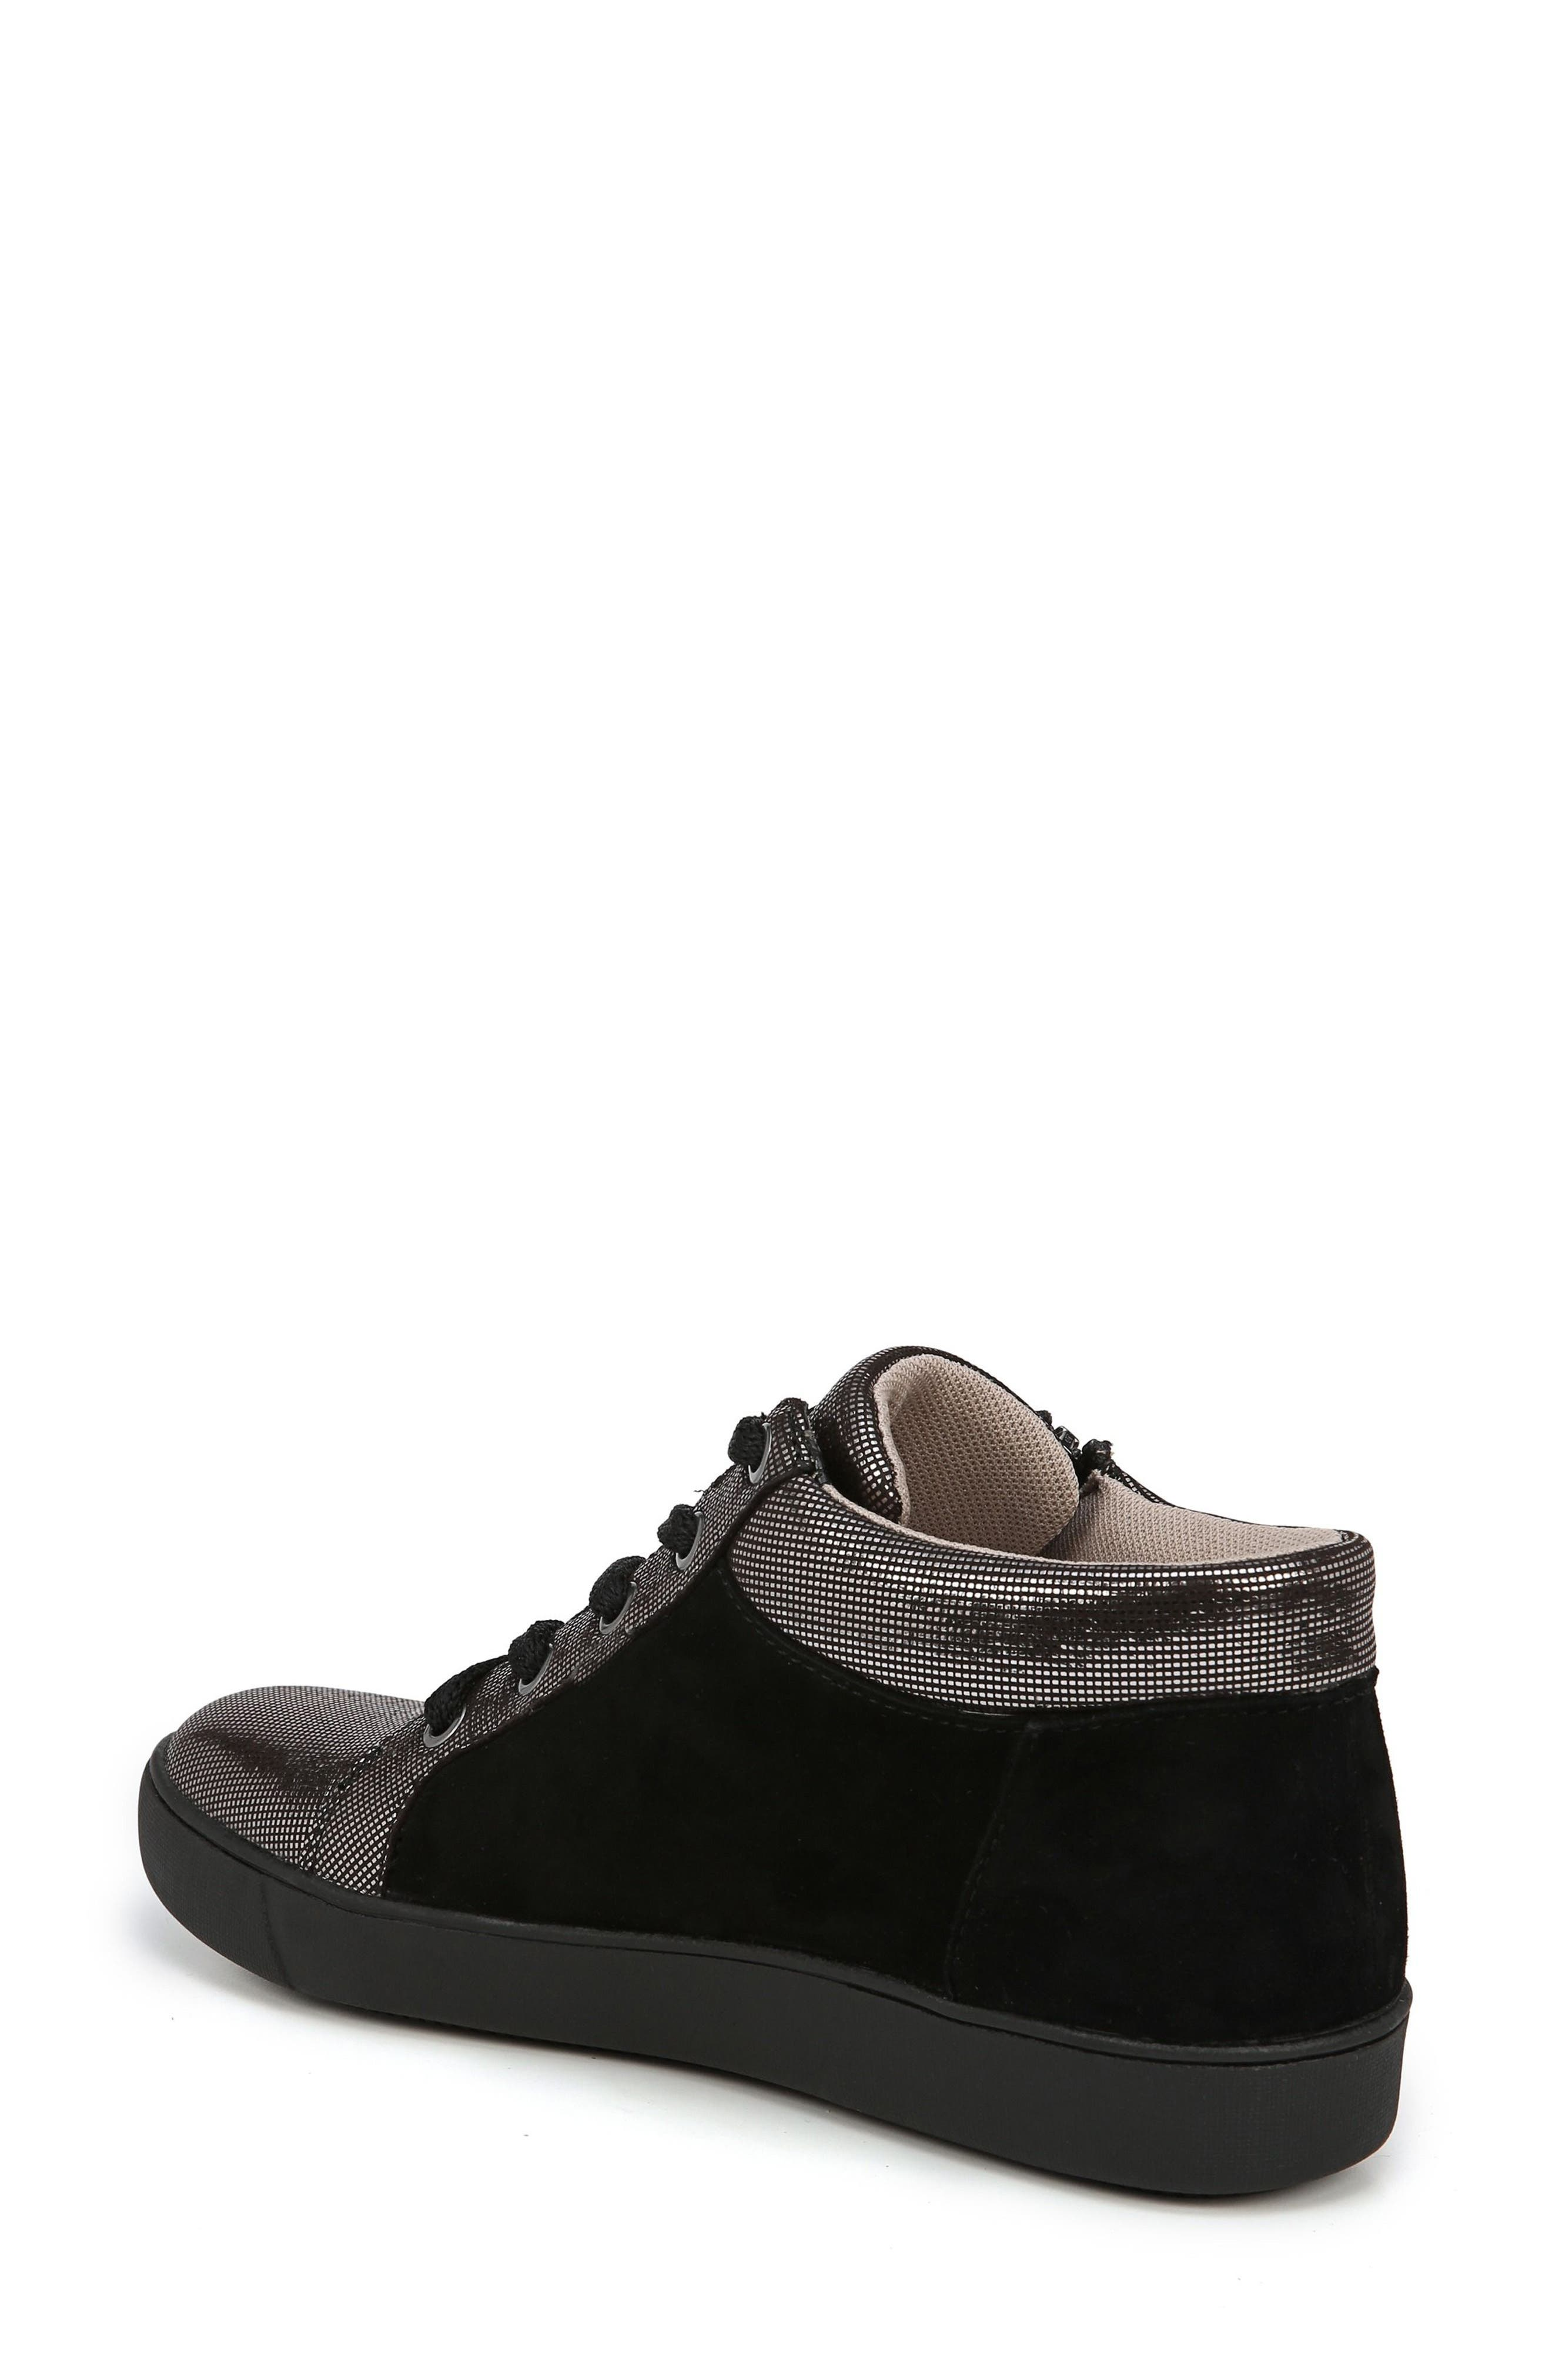 Motley Sneaker,                             Alternate thumbnail 2, color,                             PEWTER SUEDE